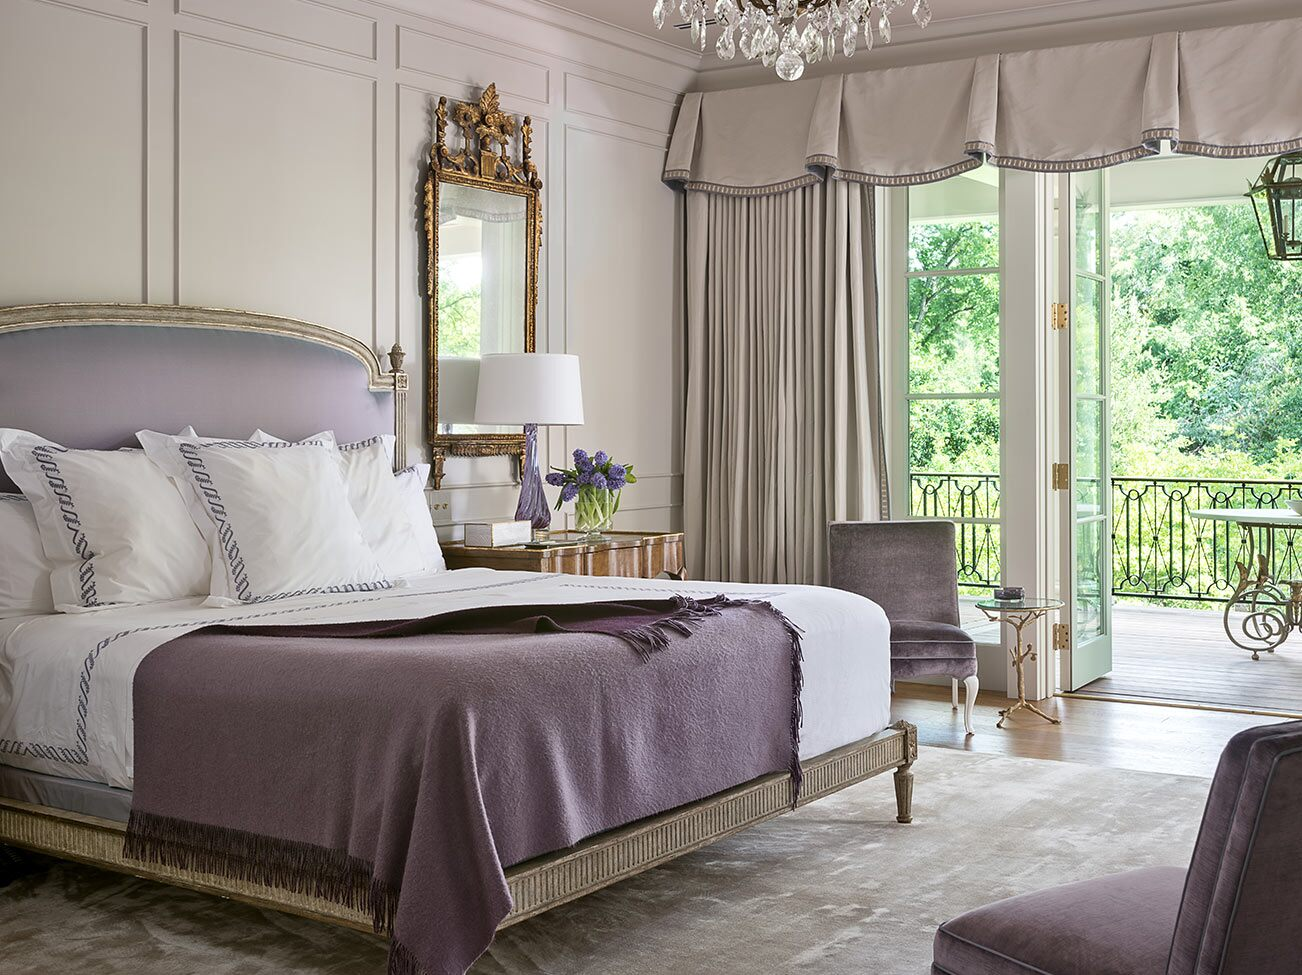 Glamourous light gray and pale lavender bedroom, paneled walls, large king bed, draped windows and door open to terrace.